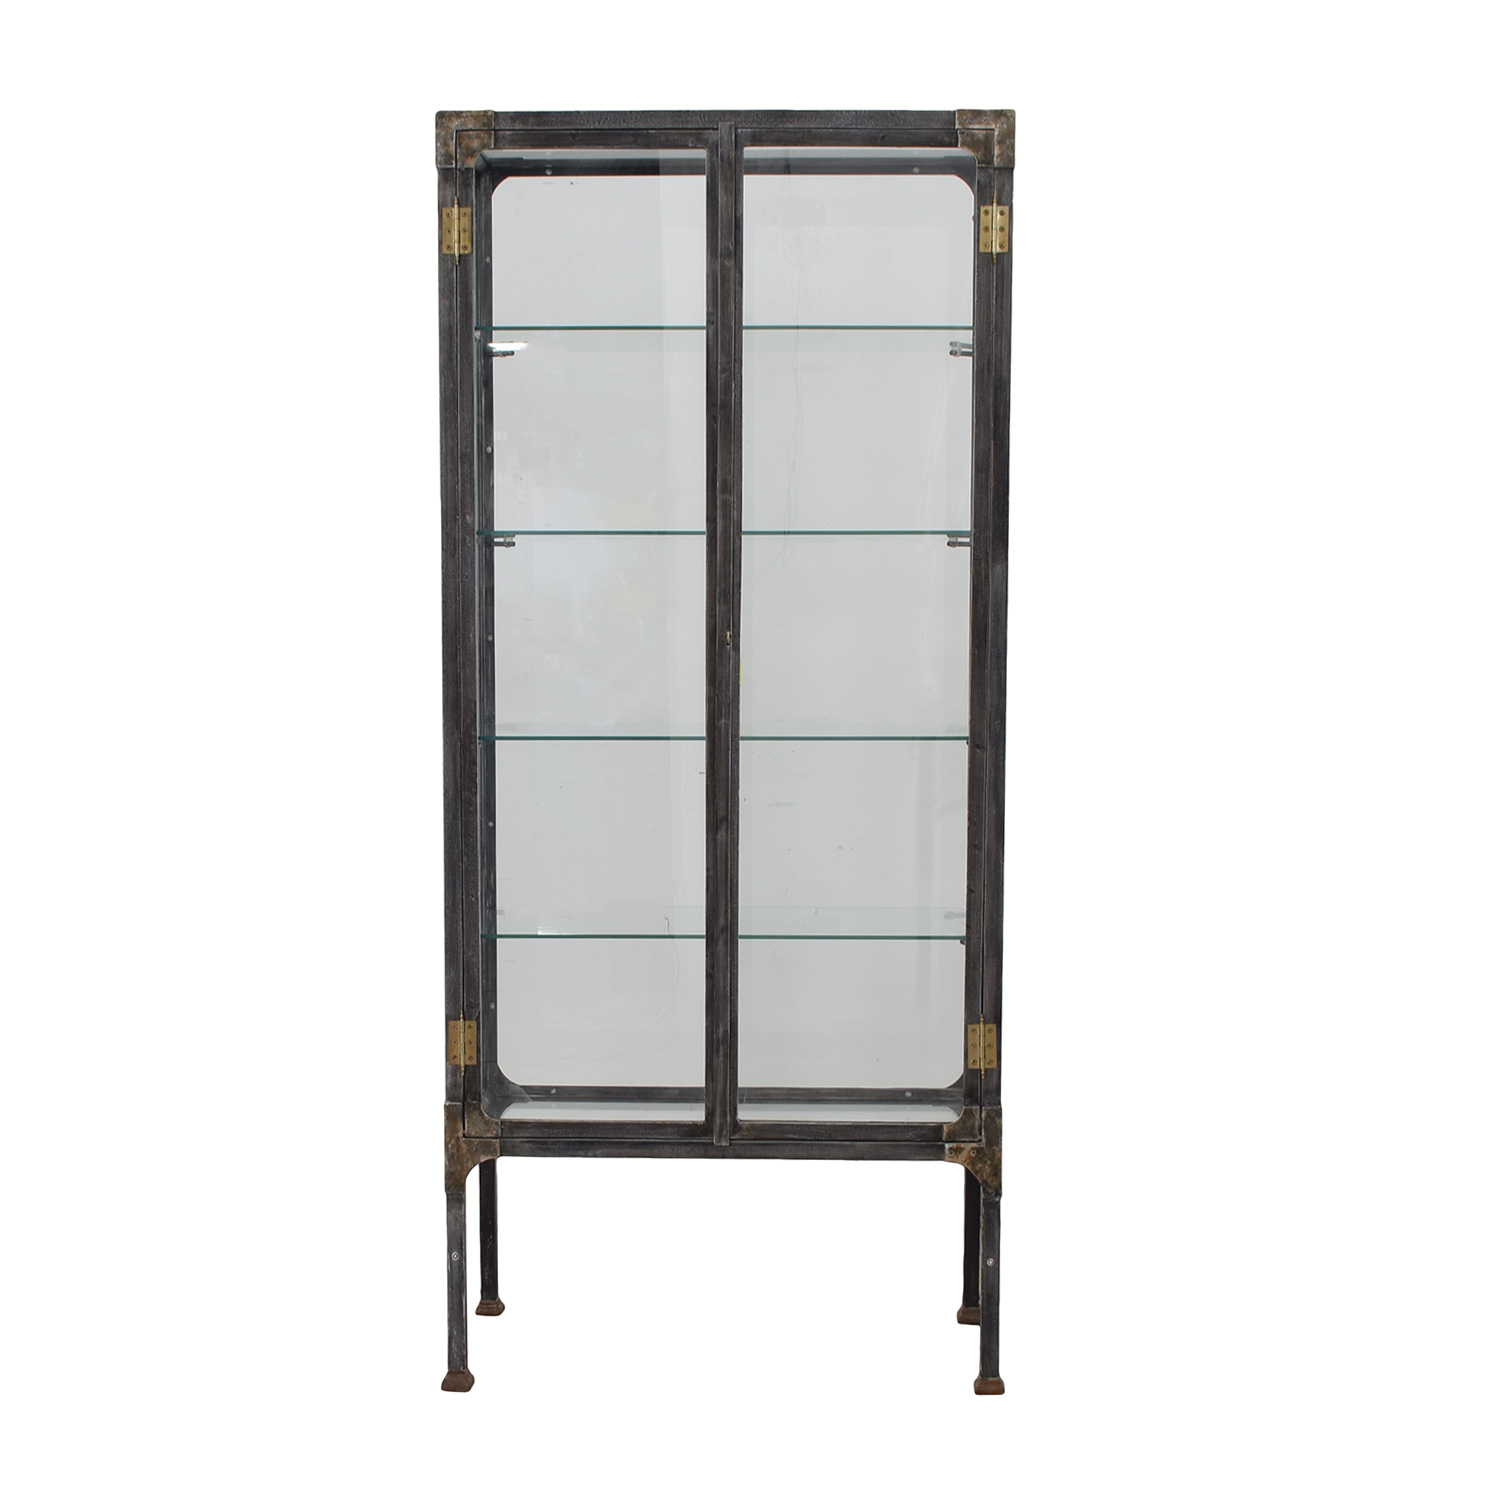 Restoration Hardware Steel & Glass Surgeon's Cabinet / Storage